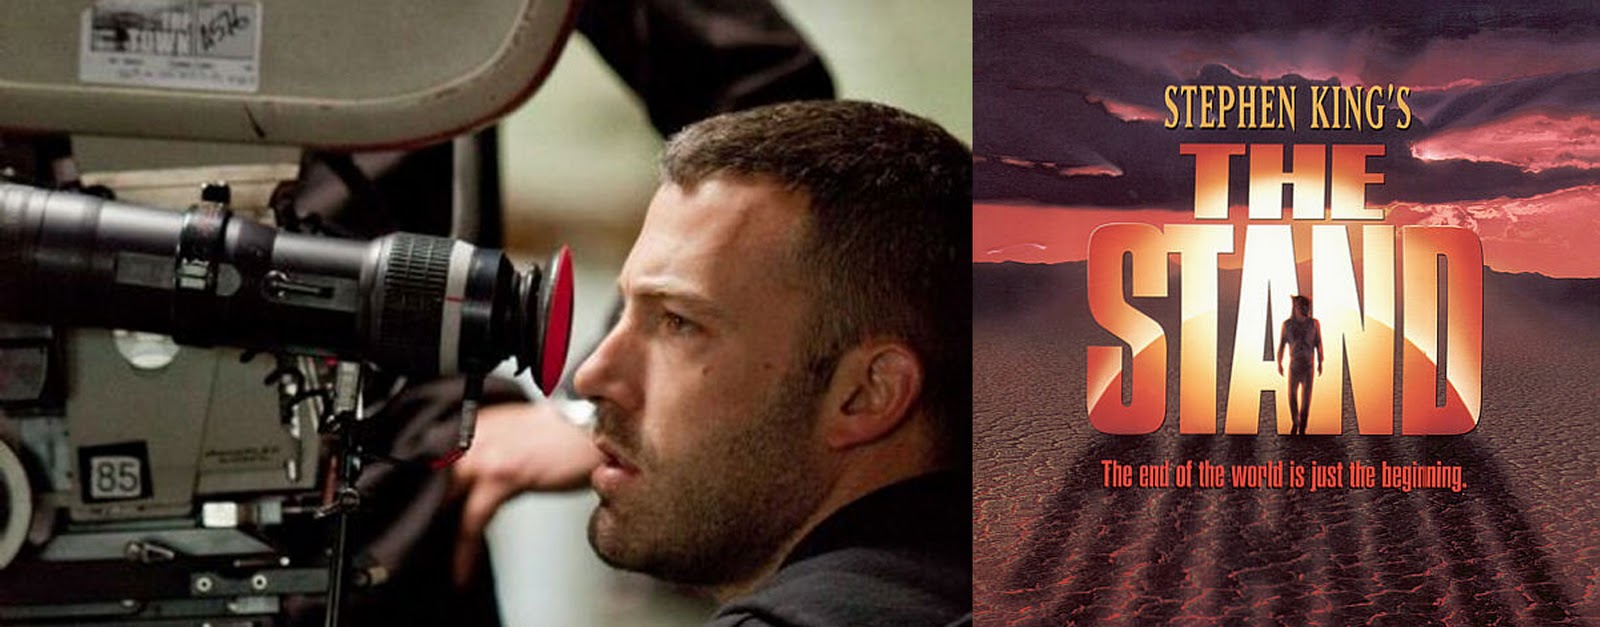 Ben Affleck Is Picked To Direct Stephen King's THE STAND?